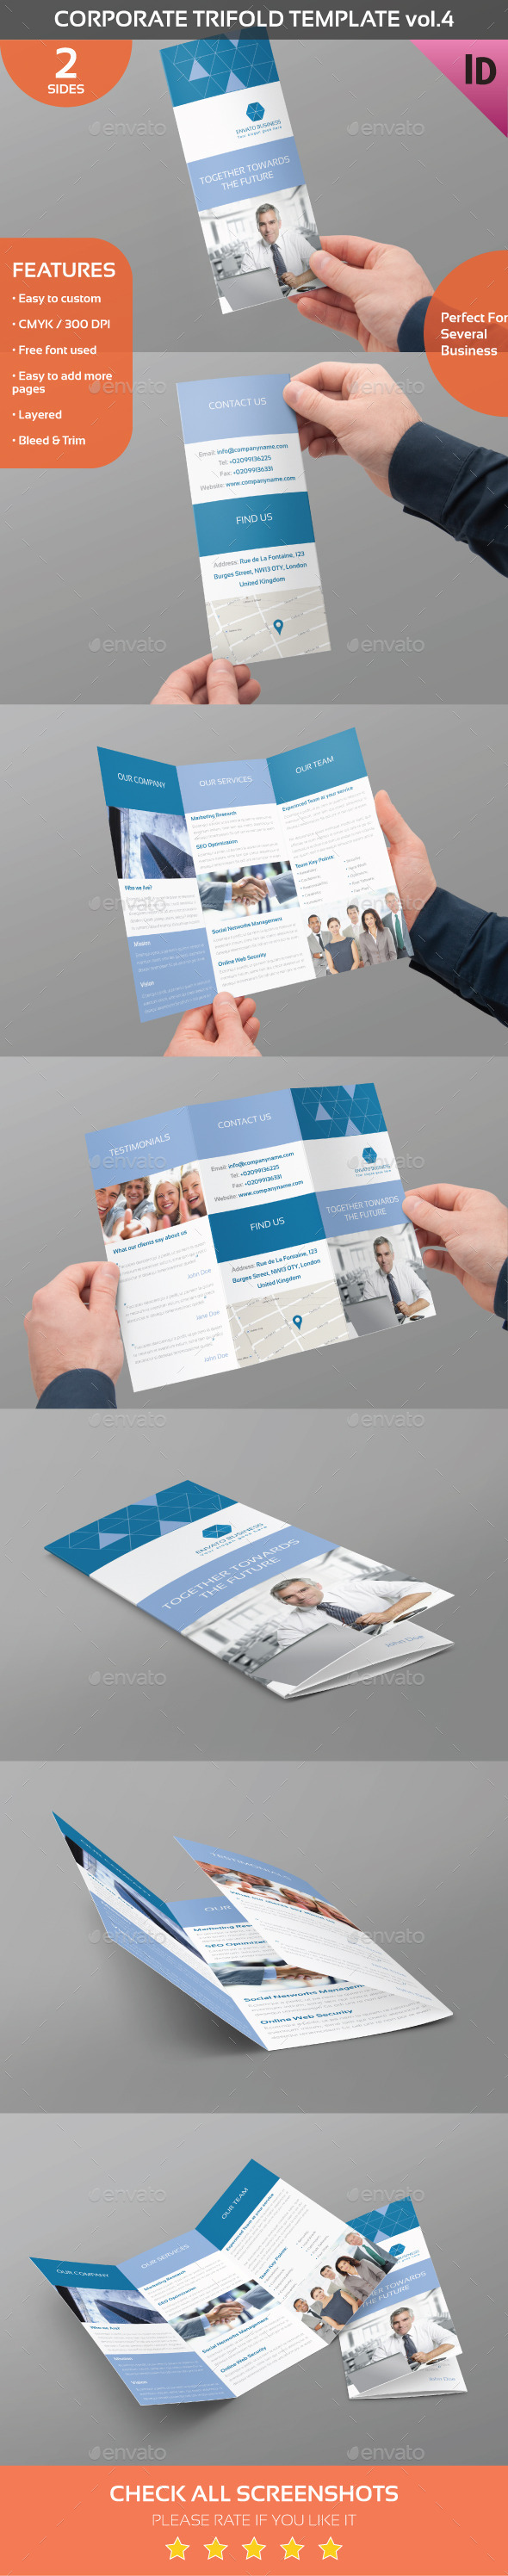 Corporate Trifold Template Vol.4